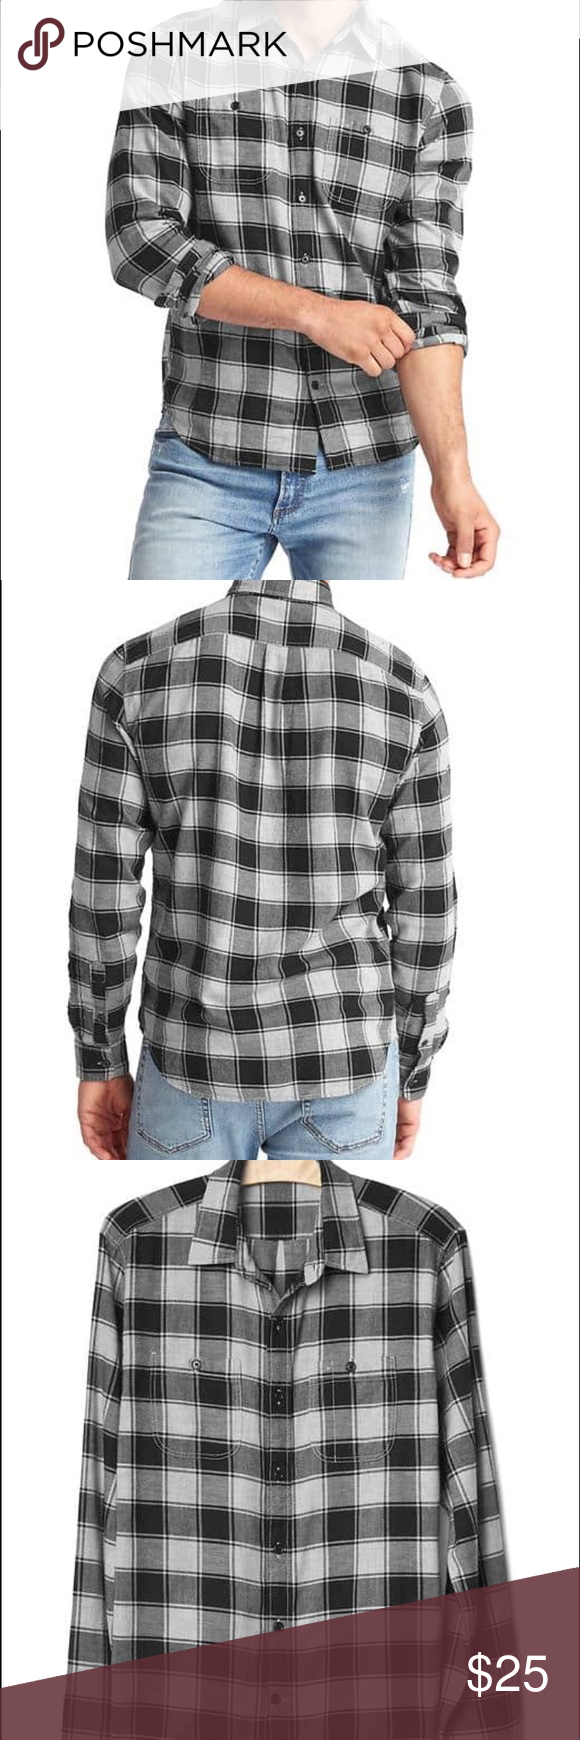 Flannel under shirt  Gap Buffalo check flannel shirt  Flannel shirts Front button and